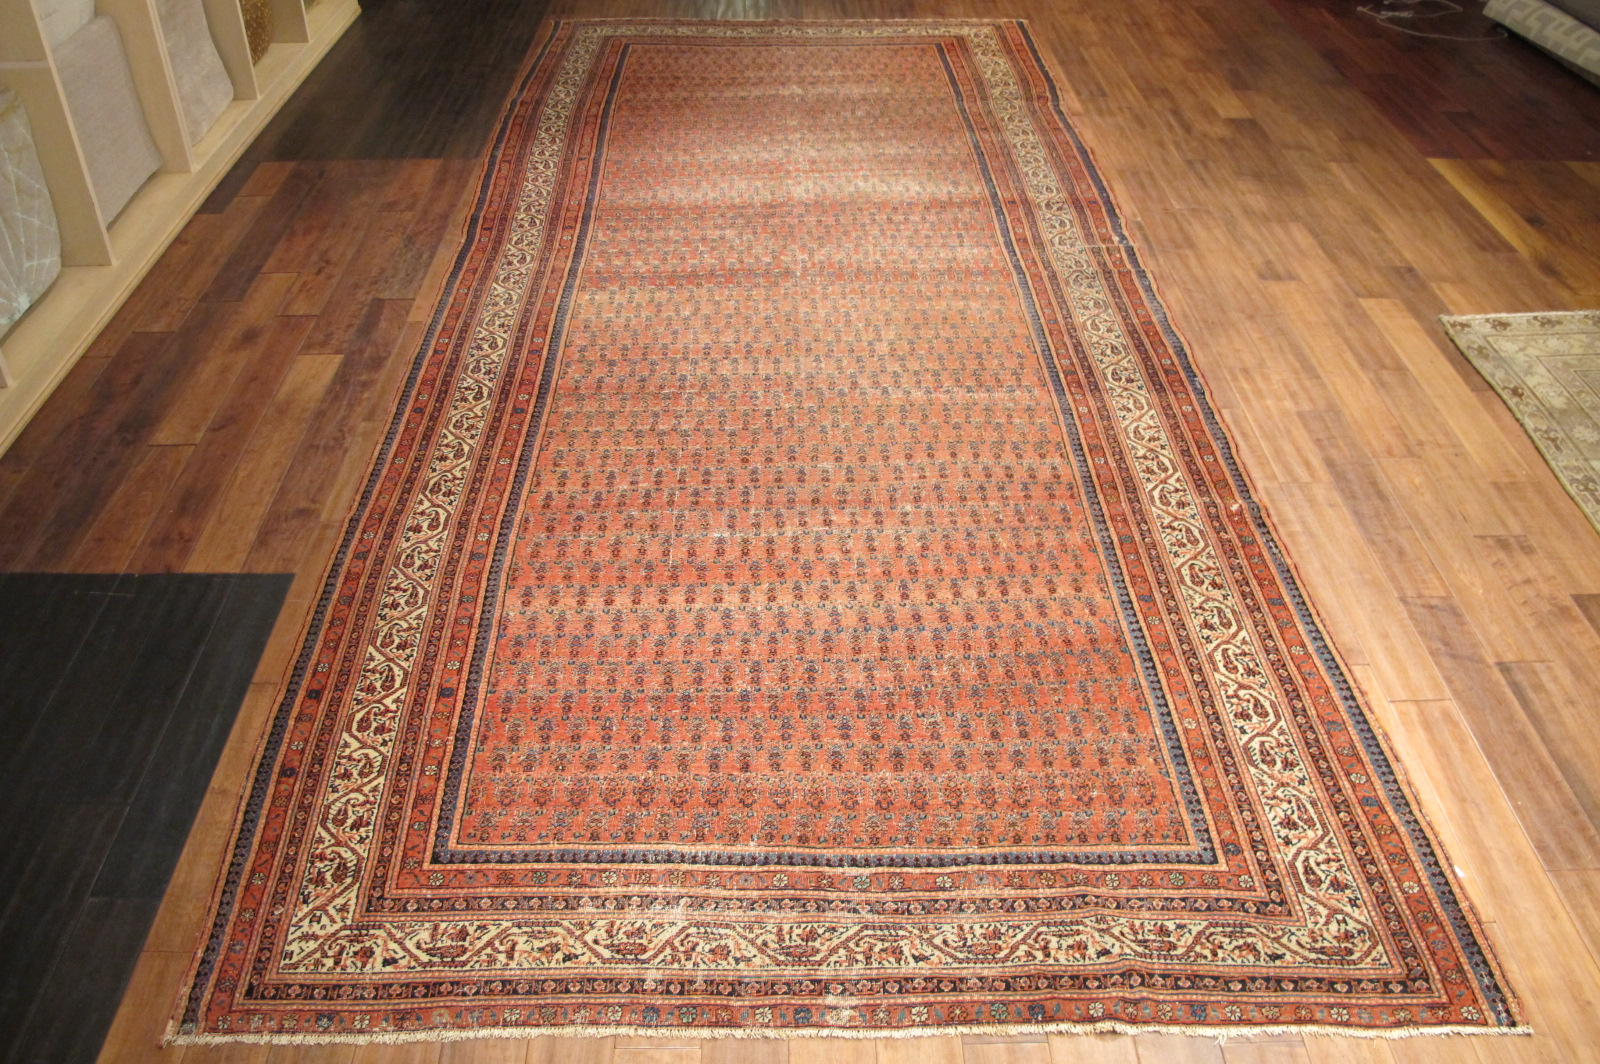 12866 antique persian serband corridor rug 6,9 x 16 (1)